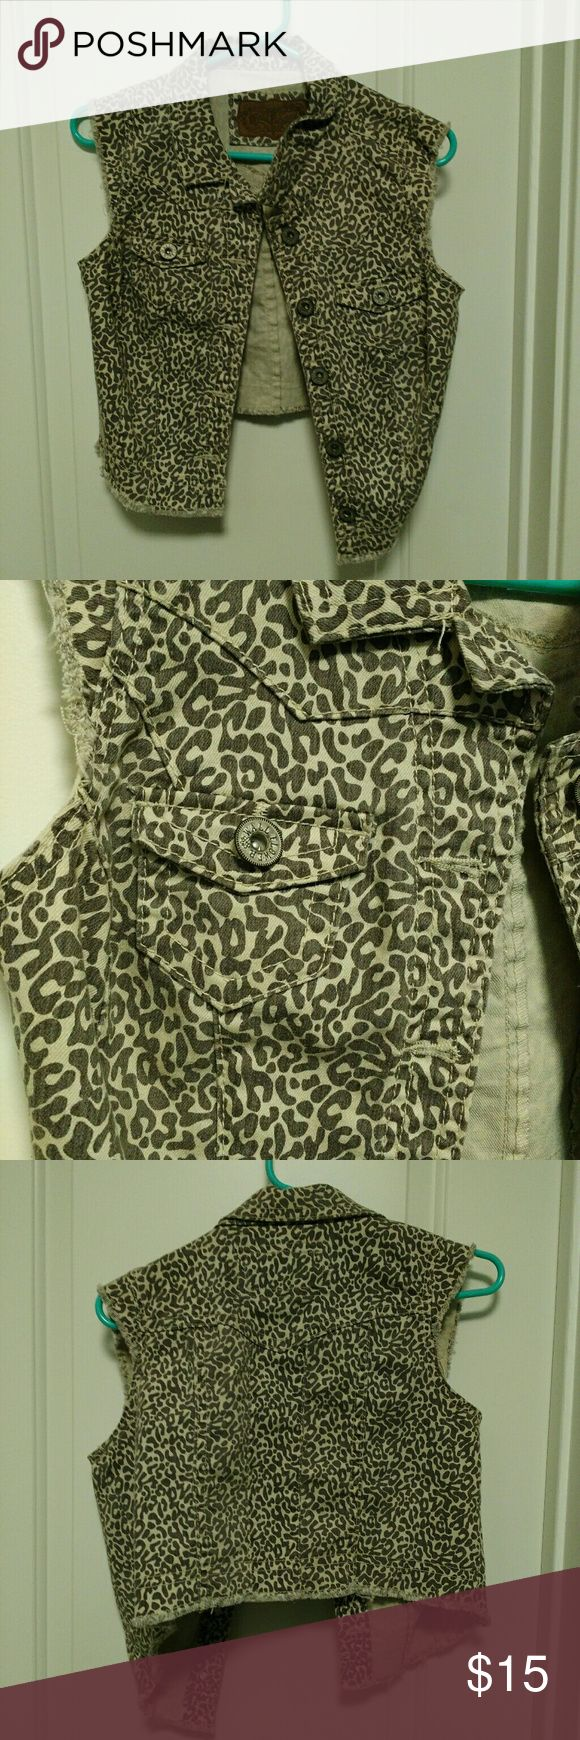 NEW! Leopard Print Jean Vest New! Gray and white jean vest. Tops